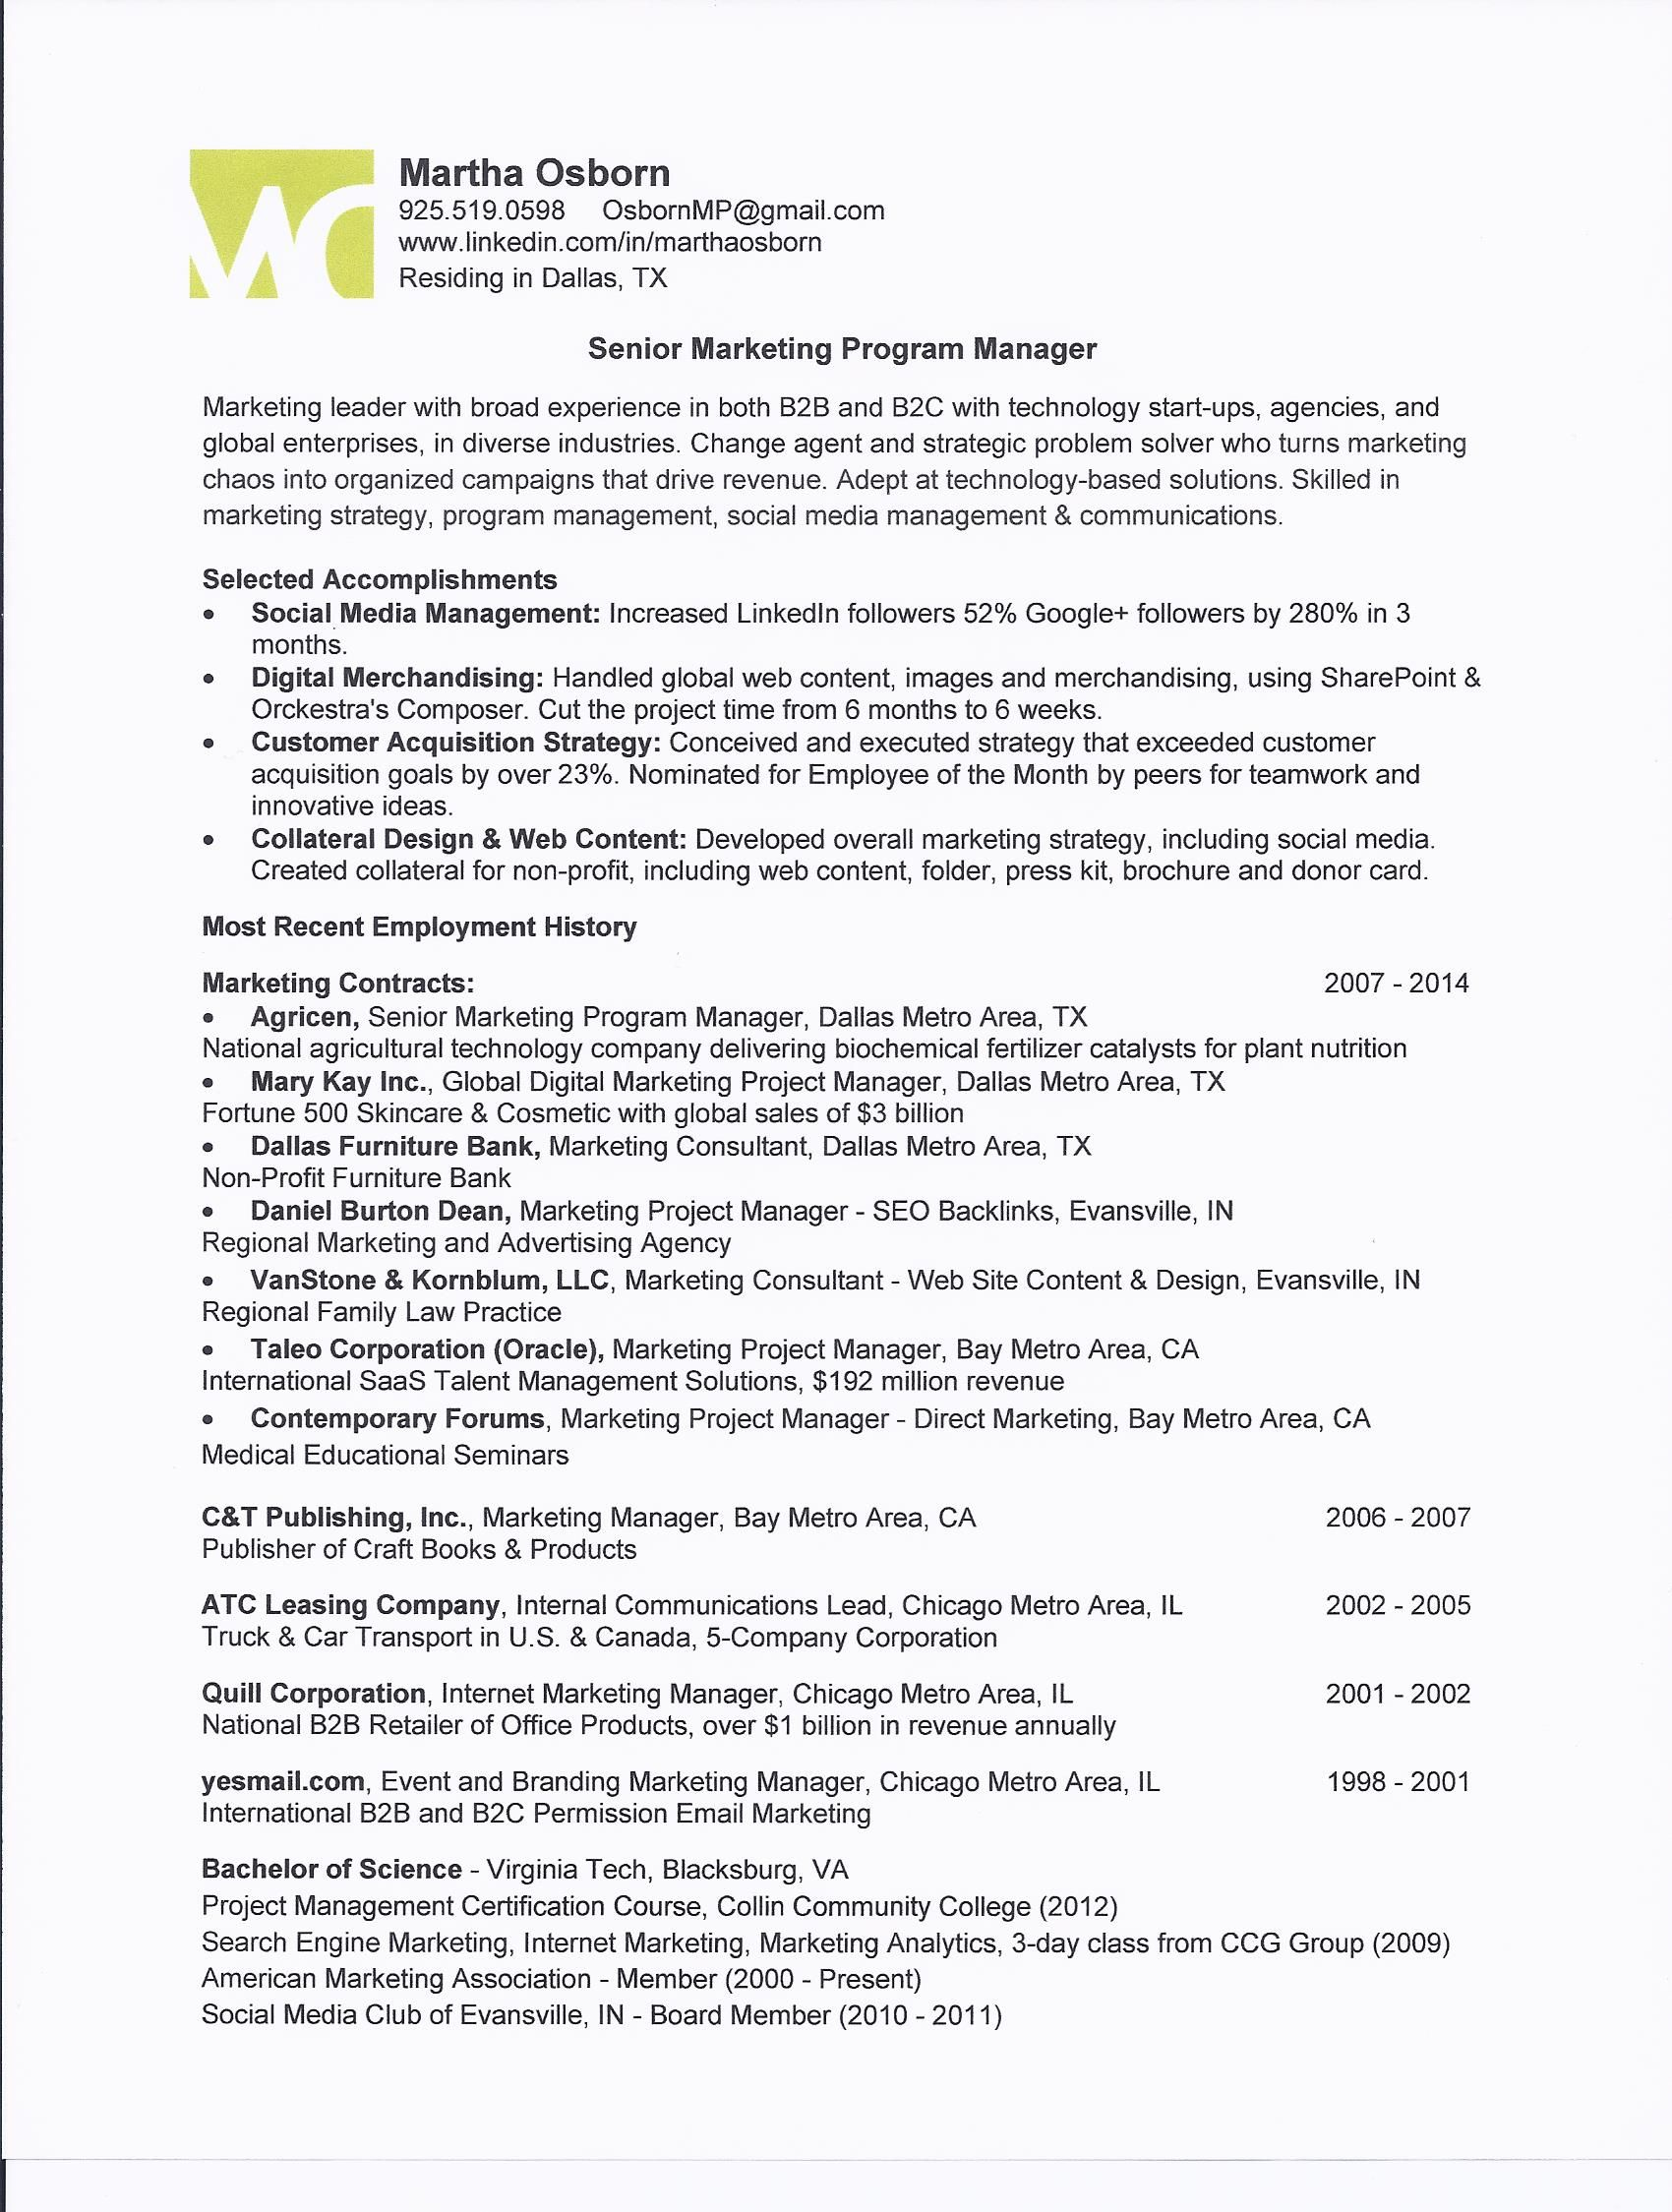 marketing program manager one page resume for martha osborn marketing program manager one page resume for martha osborn